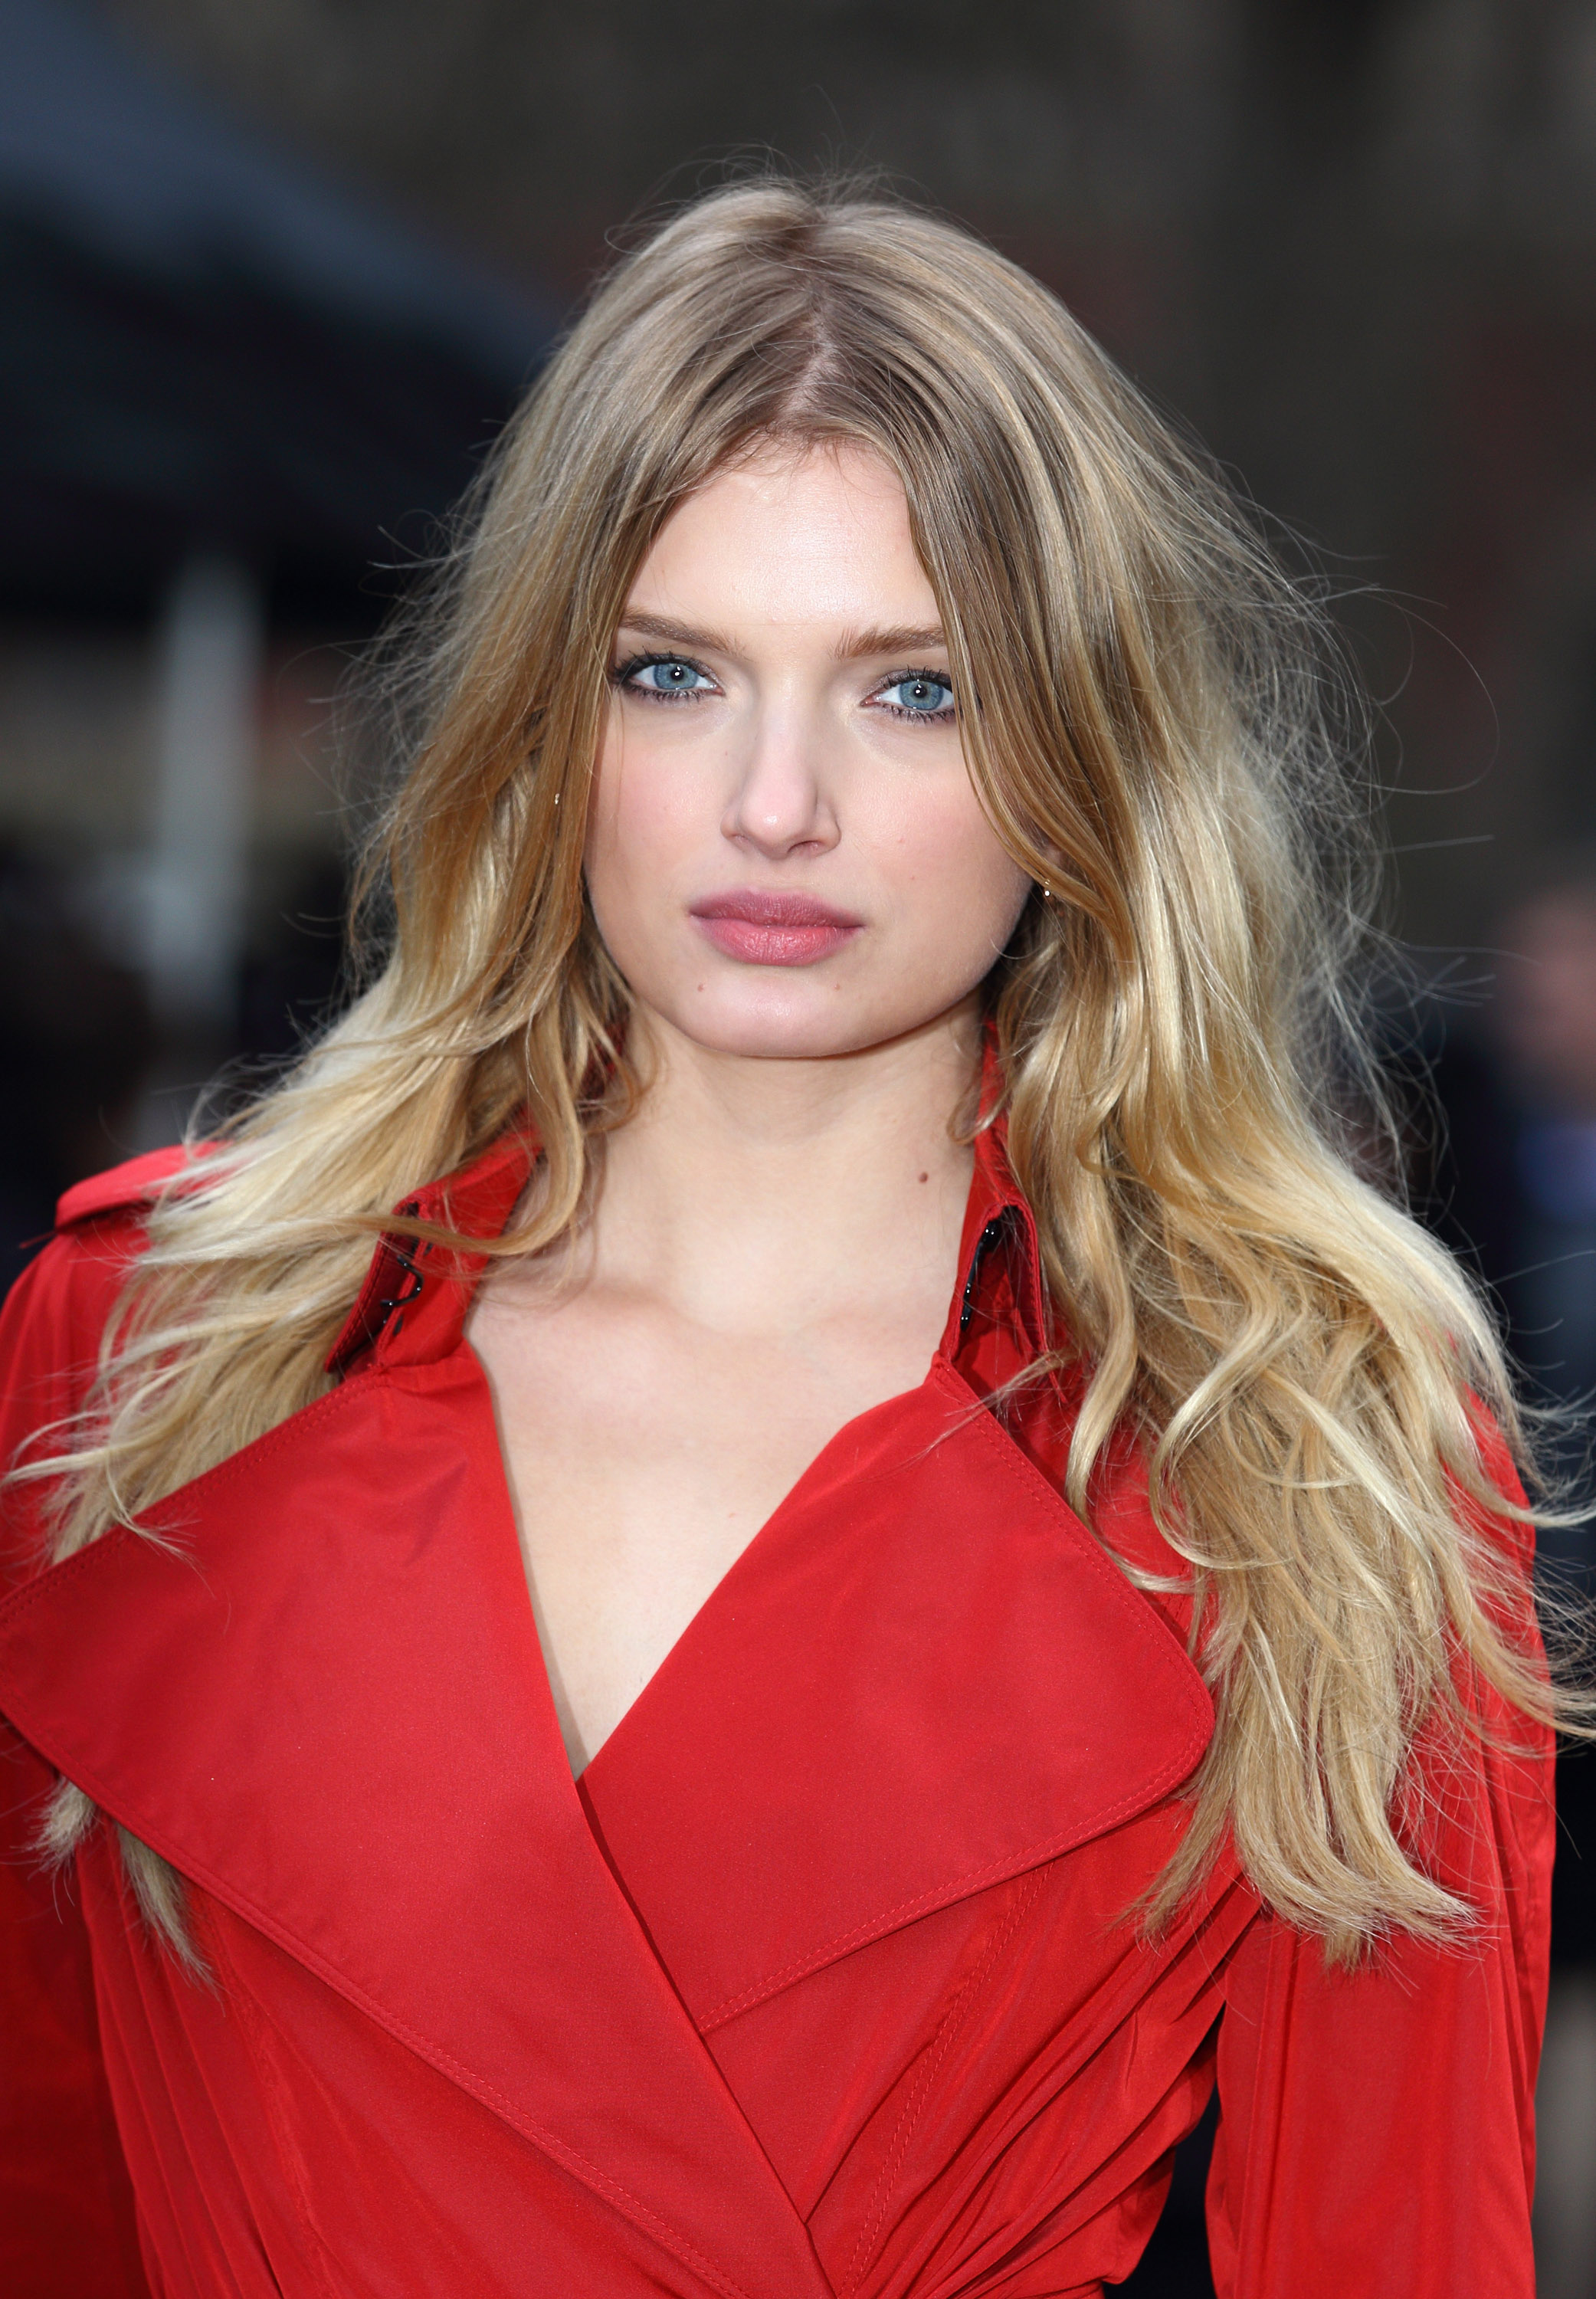 Lily Donaldson Hot Red Jacket - Lily Donaldson Hot Red Jacket